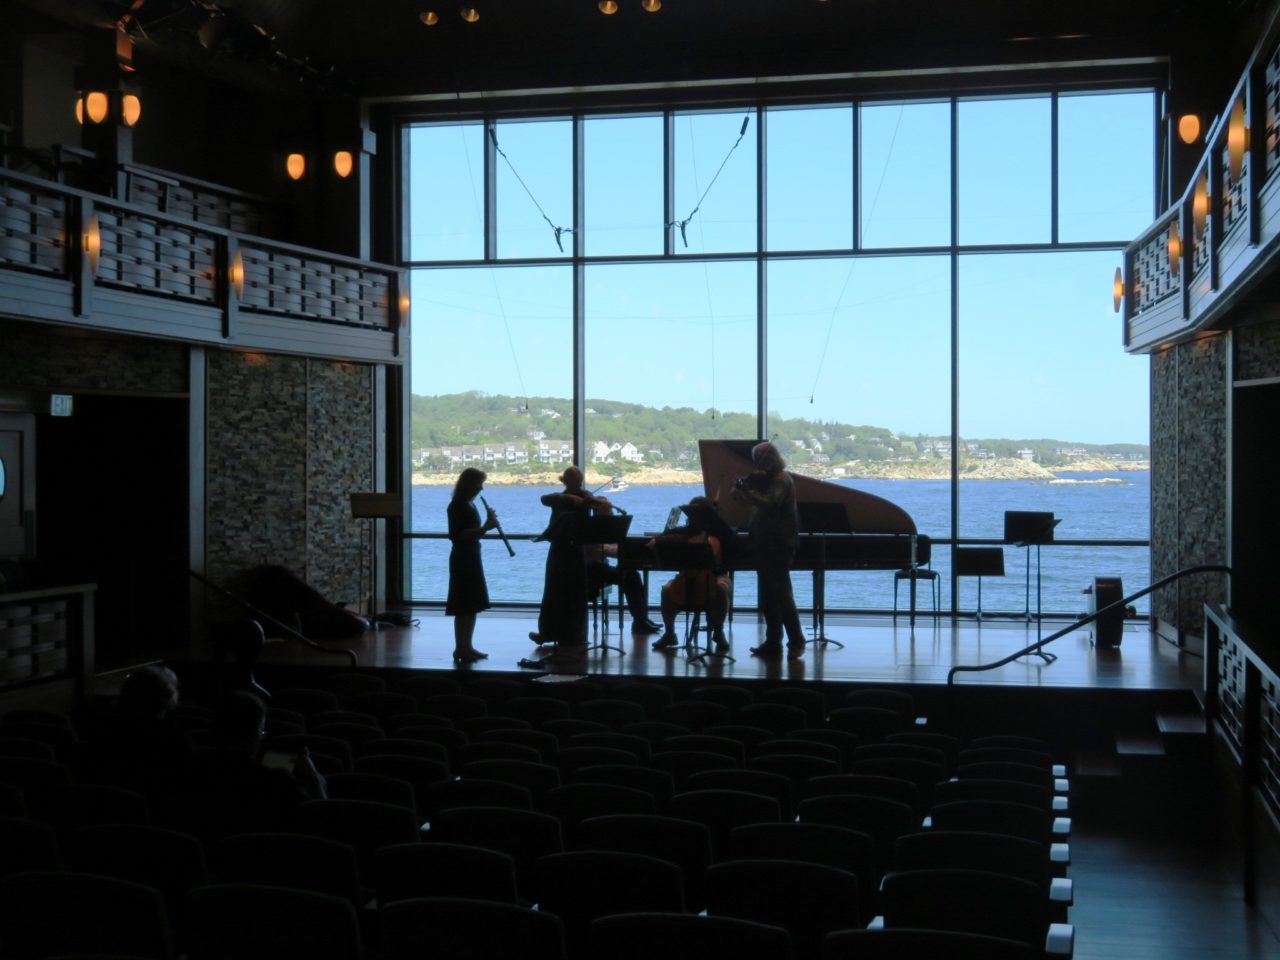 Emerson Inn by the Sea : Shalin Liu Performance Center in Rockport MA